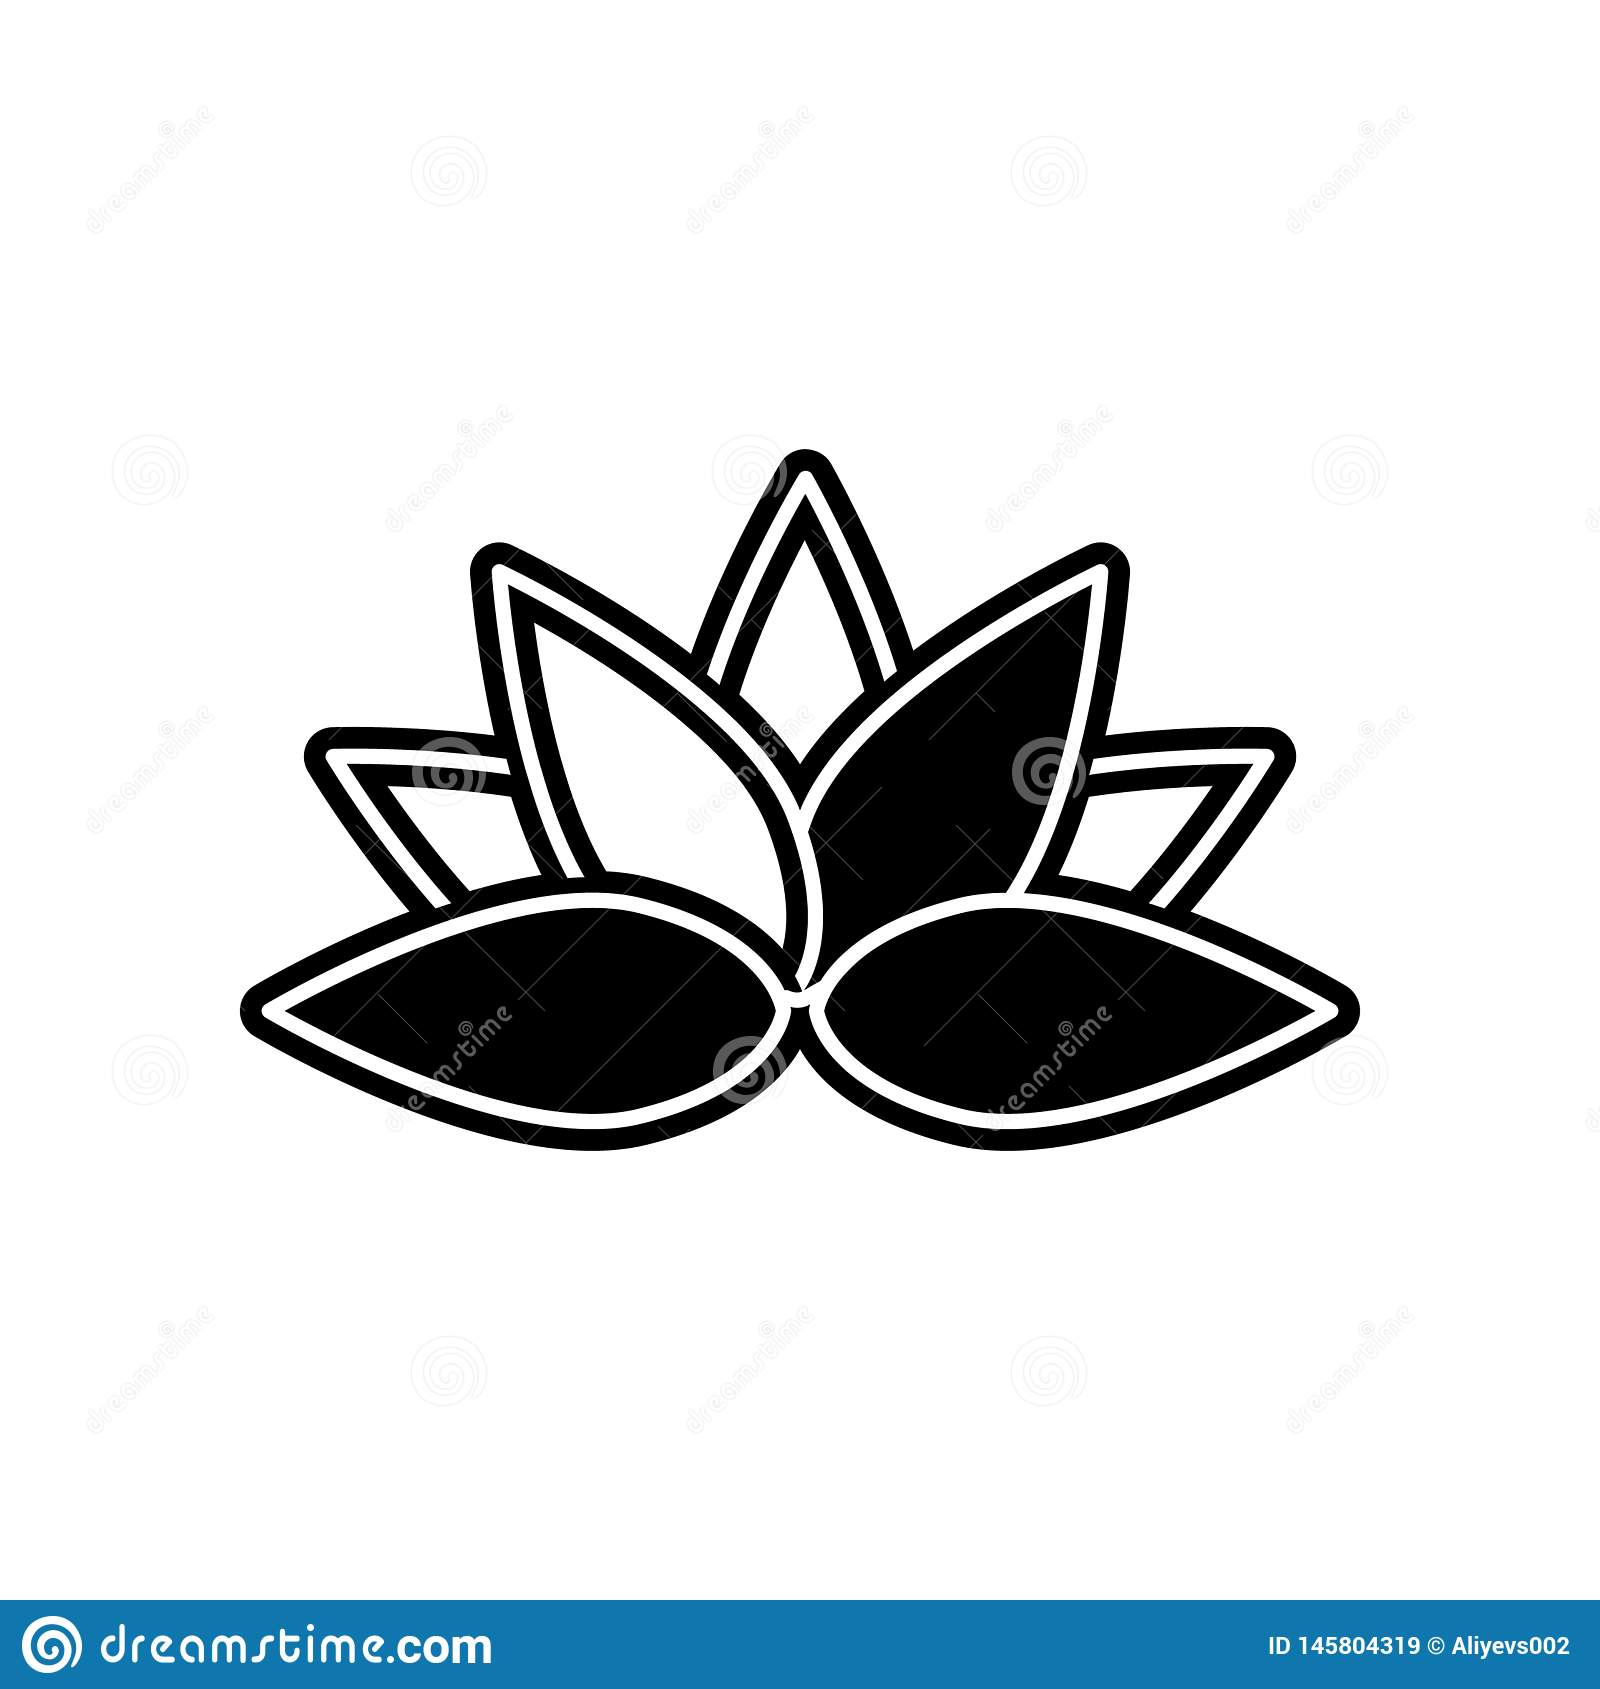 abstract type of lotus flowers icon. Element of Flower for mobile concept and web apps icon. Glyph, flat icon for website design